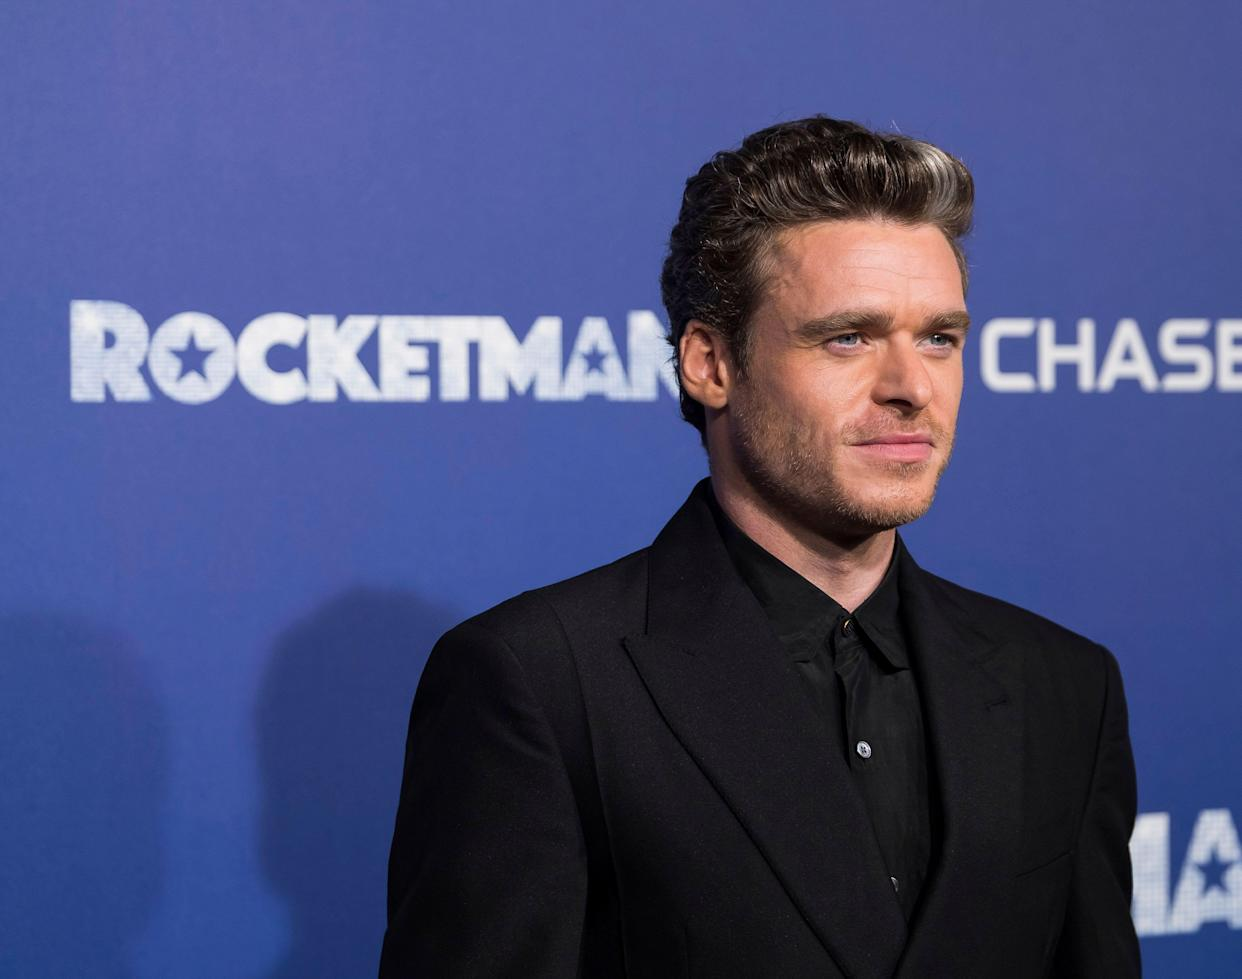 """Richard Madden attends the premiere of """"Rocketman"""" at Alice Tully Hall on Wednesday, May 29, 2019, in New York. (Photo by Charles Sykes/Invision/AP)"""